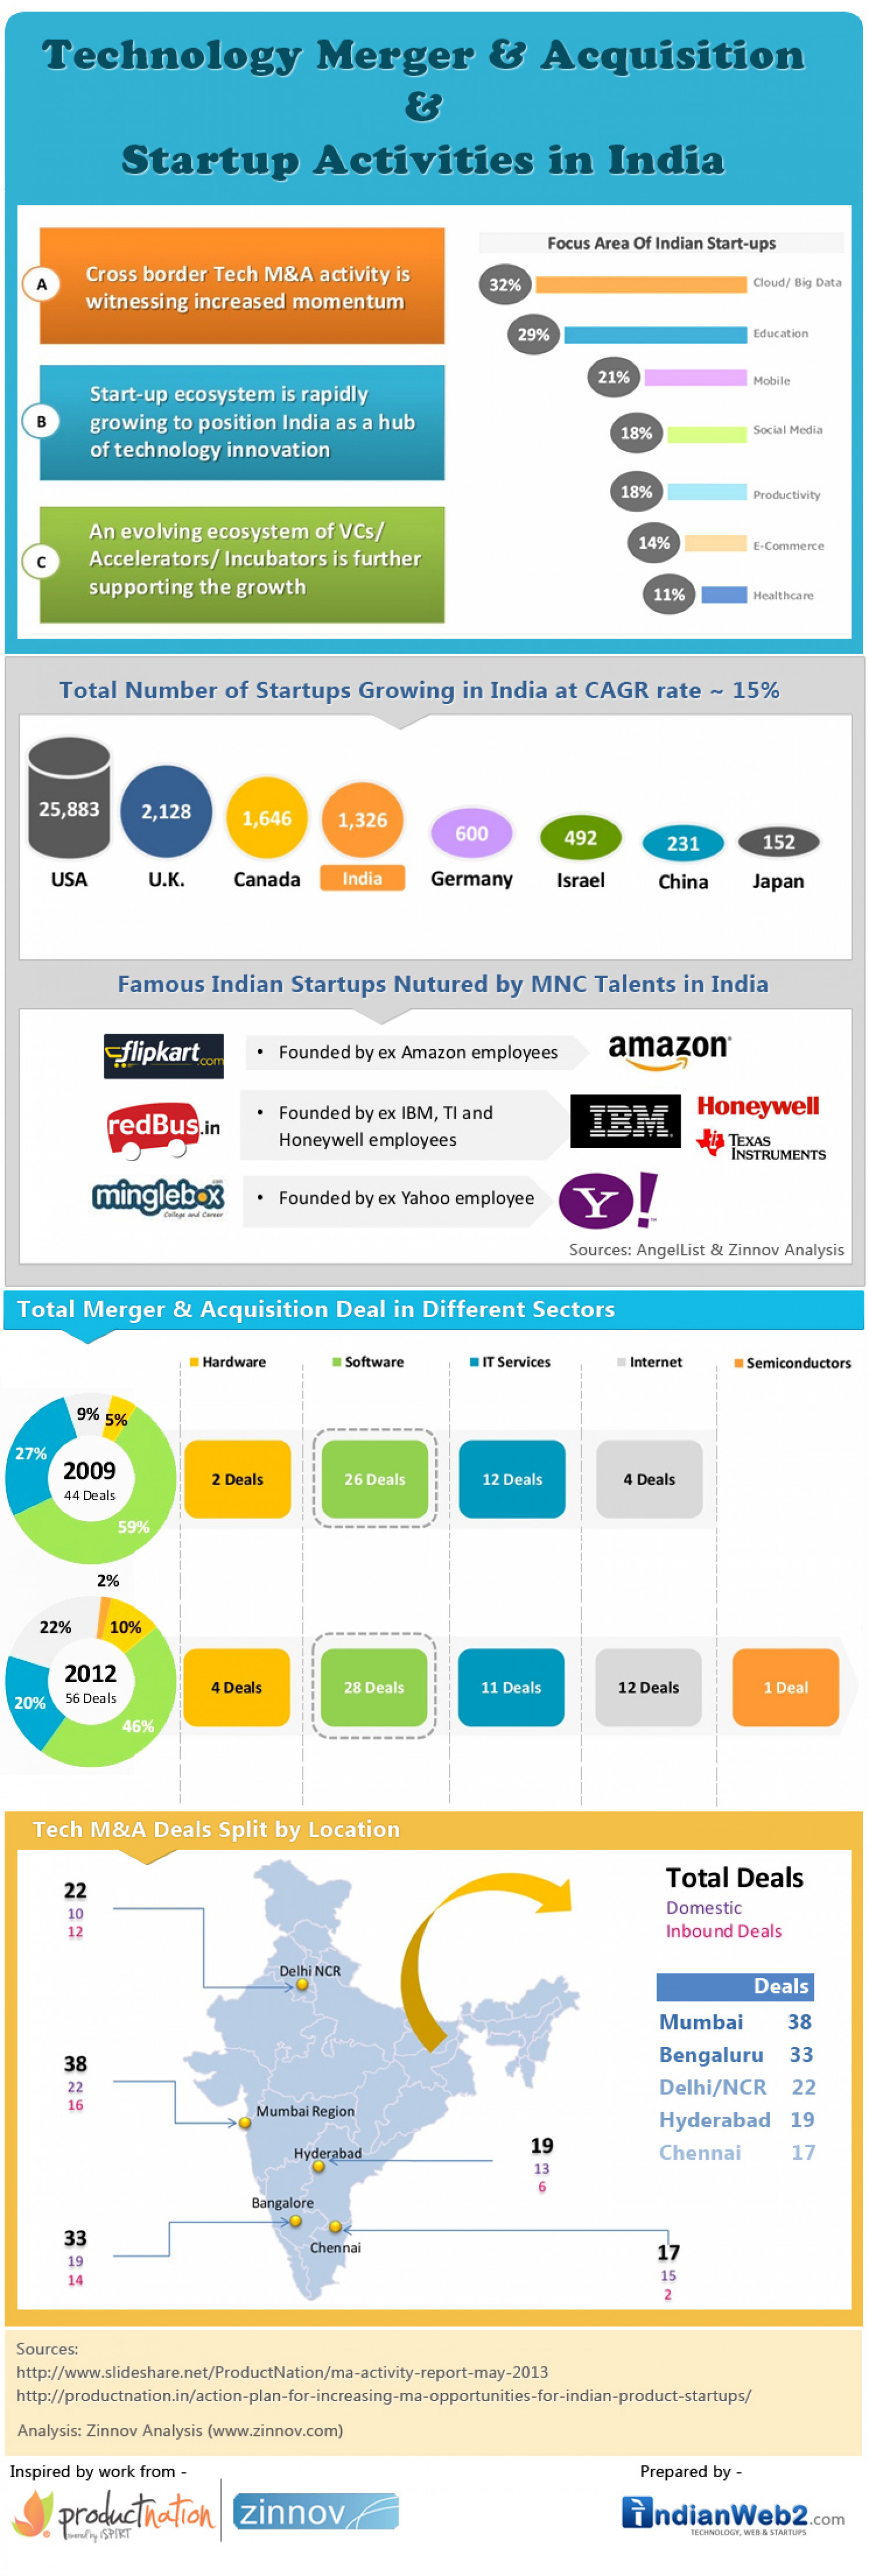 Indian Startups and Merger & Acquisition Report Infographic